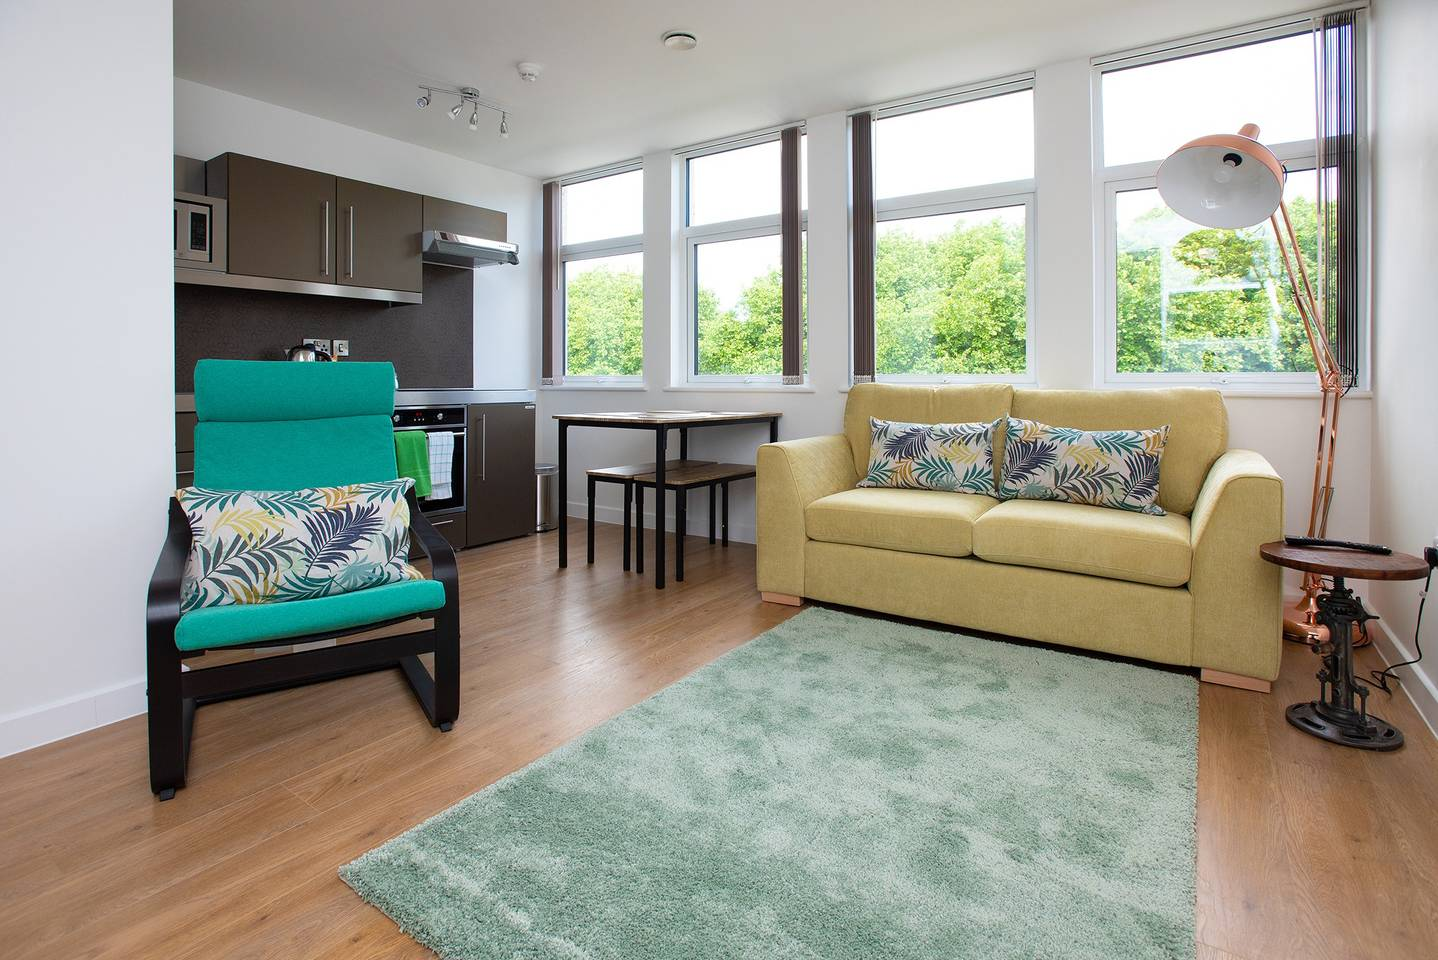 Furnished-Accommodation-Southampton-UK-|-Book-Cheap-Short-Let-Portcullis-House-Apartments-|-Free-Wi-Fi-|-Lift|-Fully-Equipped-Kitchen-|-Urban-Stay